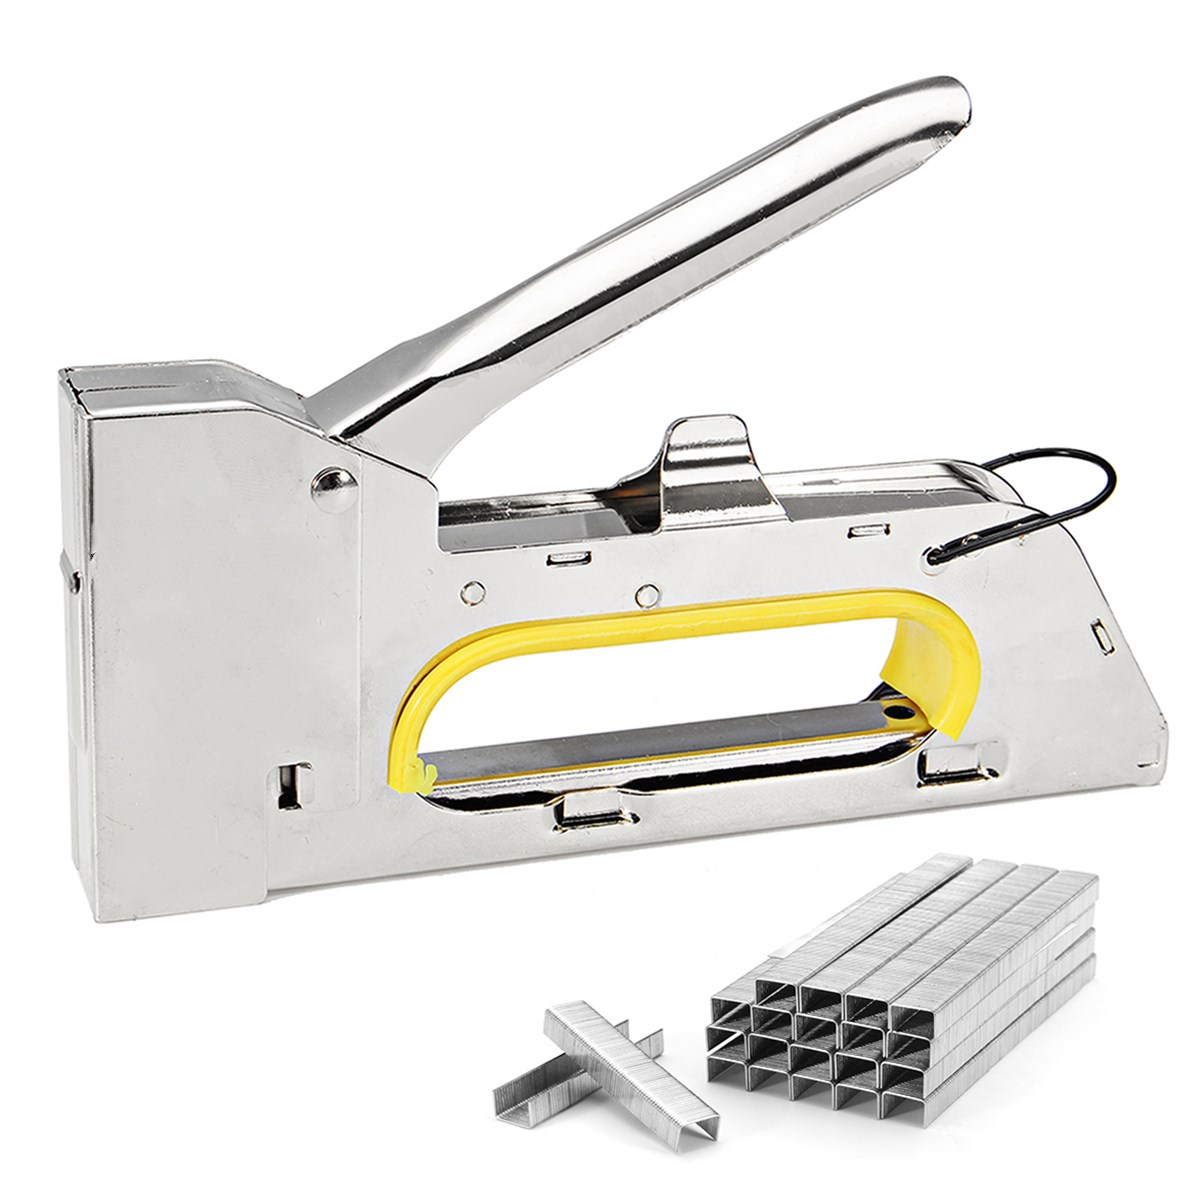 4/6/8MM Heavy   Hand Nail Gun Furniture Stapler For Framing Paper Window With 2400pc Staples Woodworking Tacker Tools